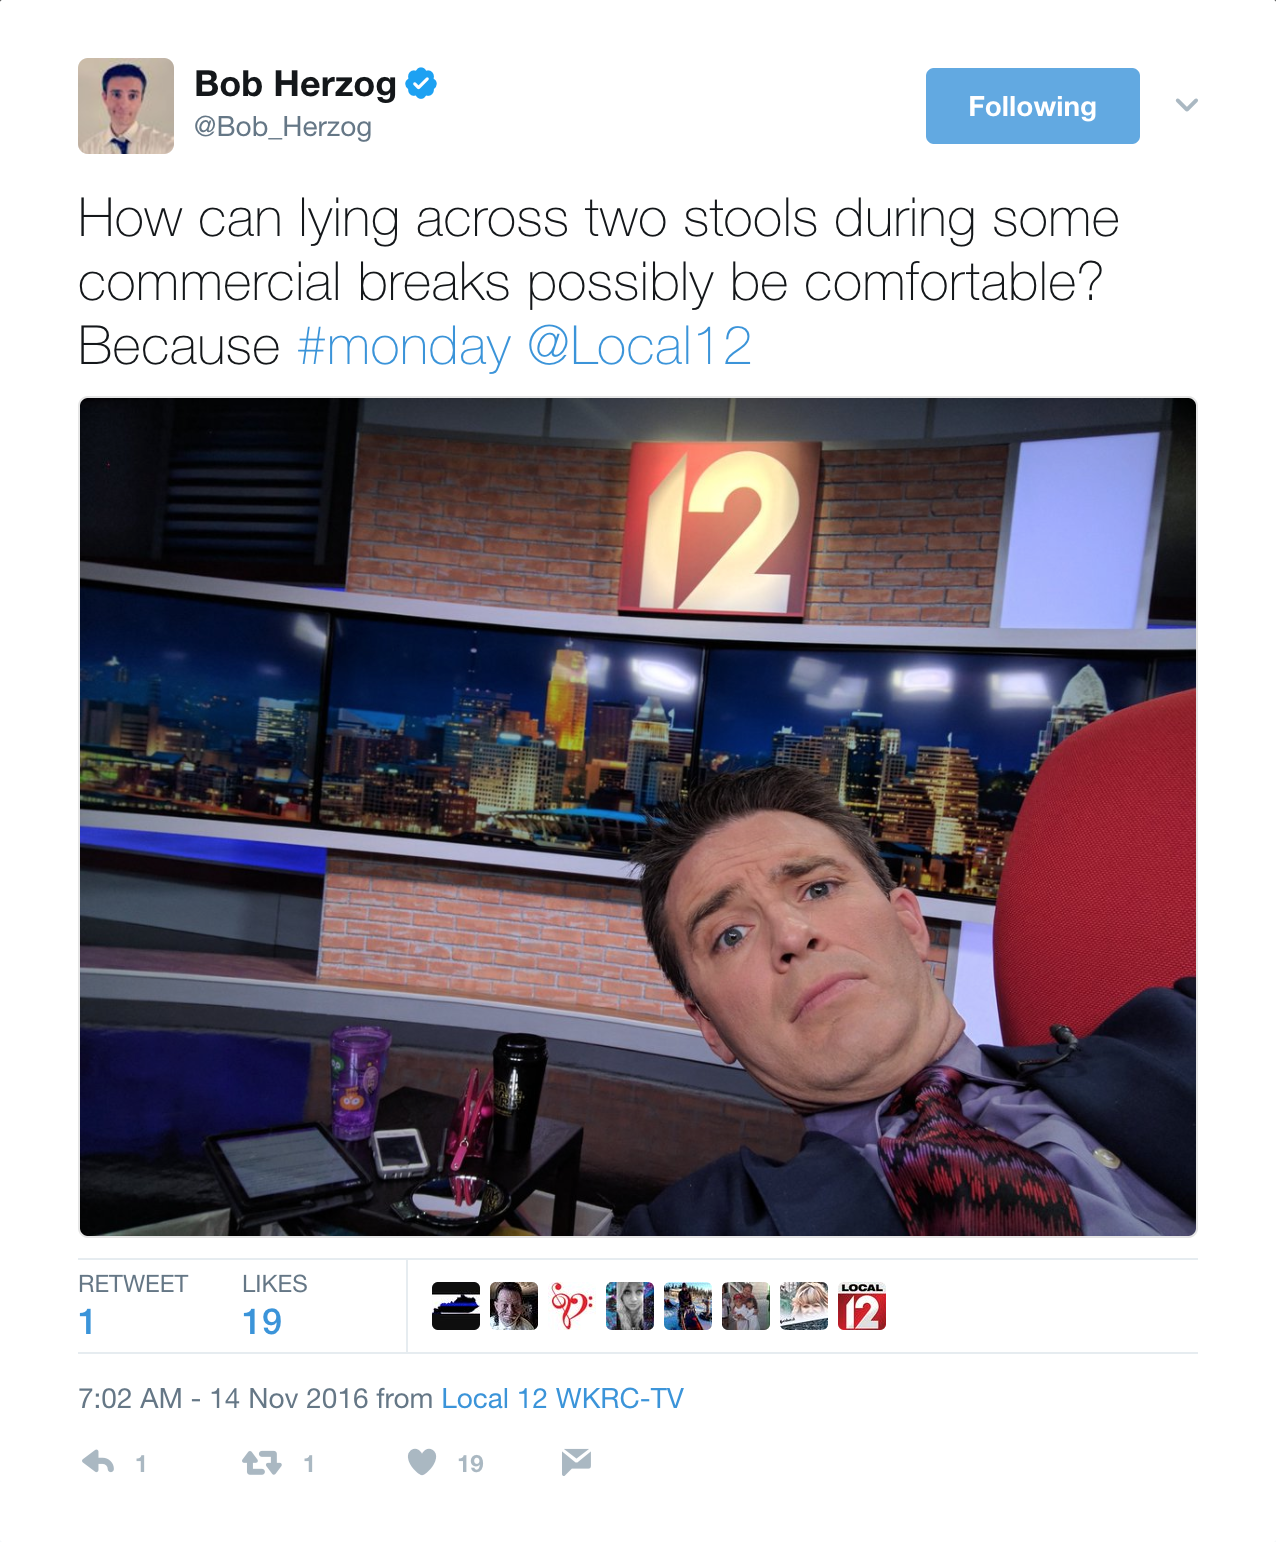 Yes, even the energetic, positive Bob Herzog can have a powerful case of the Mondays. Give him a follow: @Bob_Herzog / Image courtesy of @Bob_Herzog on Twitter // Published: 6.2.17